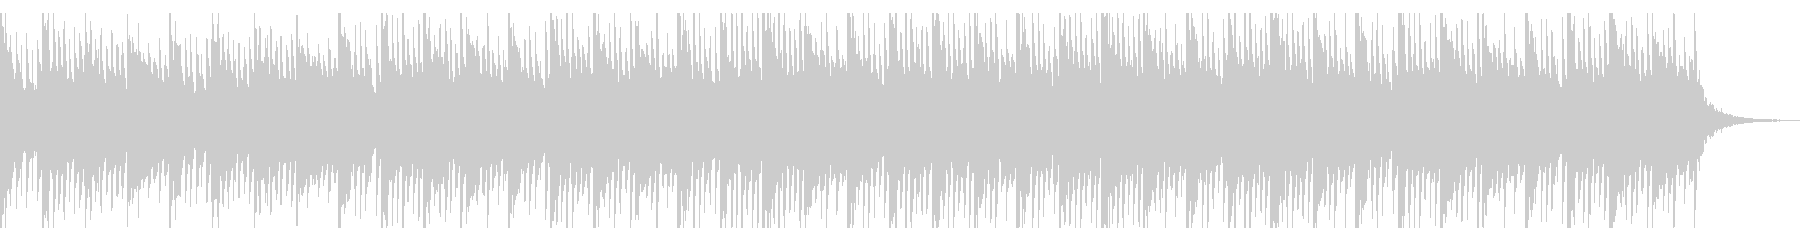 documentary's unreproduced waveform